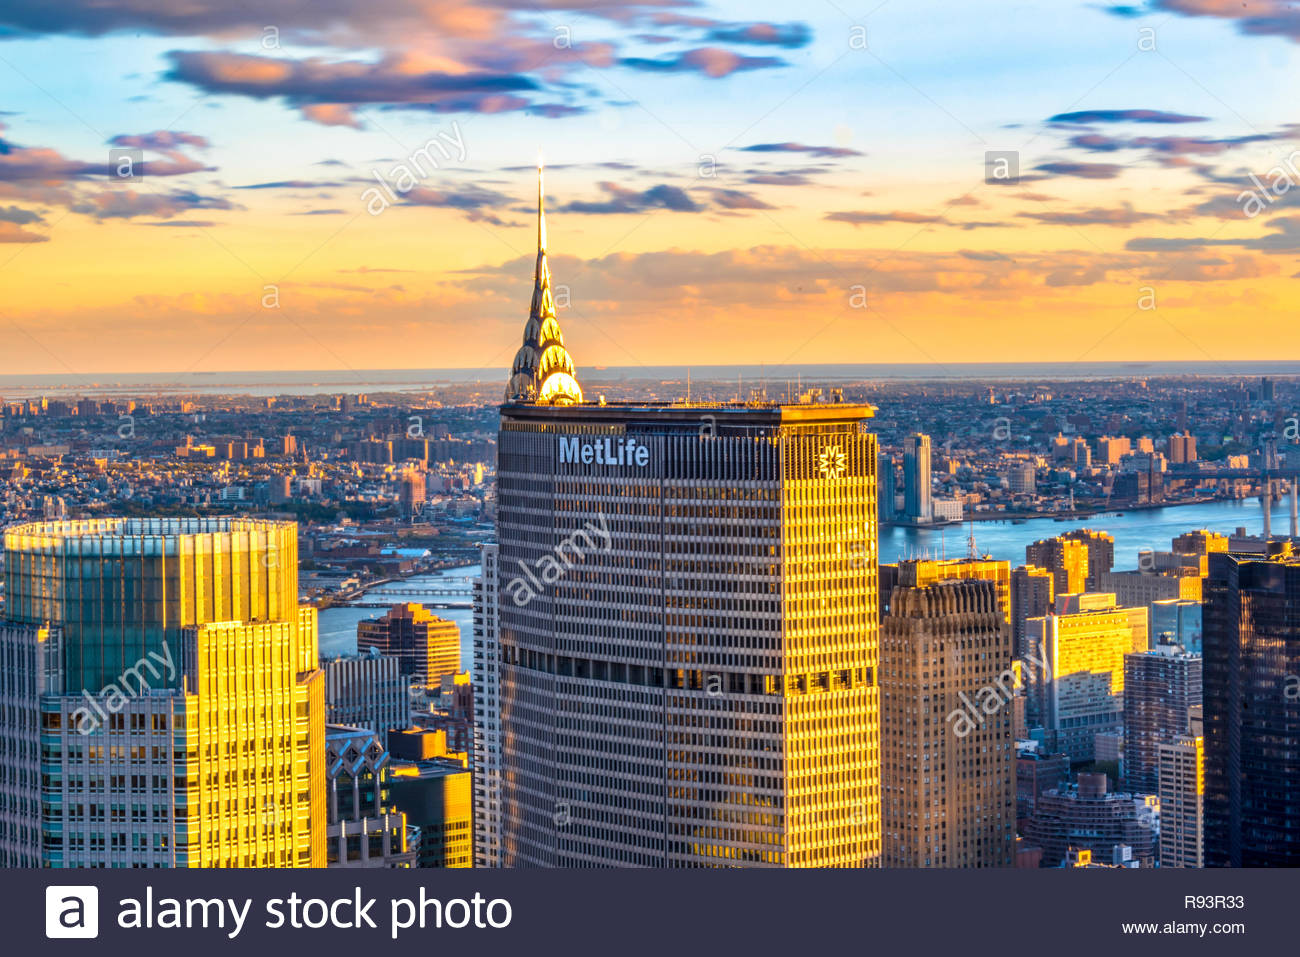 New York tours and attractions: Metlife building standing tall in the city scape of New York City, Unites States.  MetLife is among the largest global - Stock Image